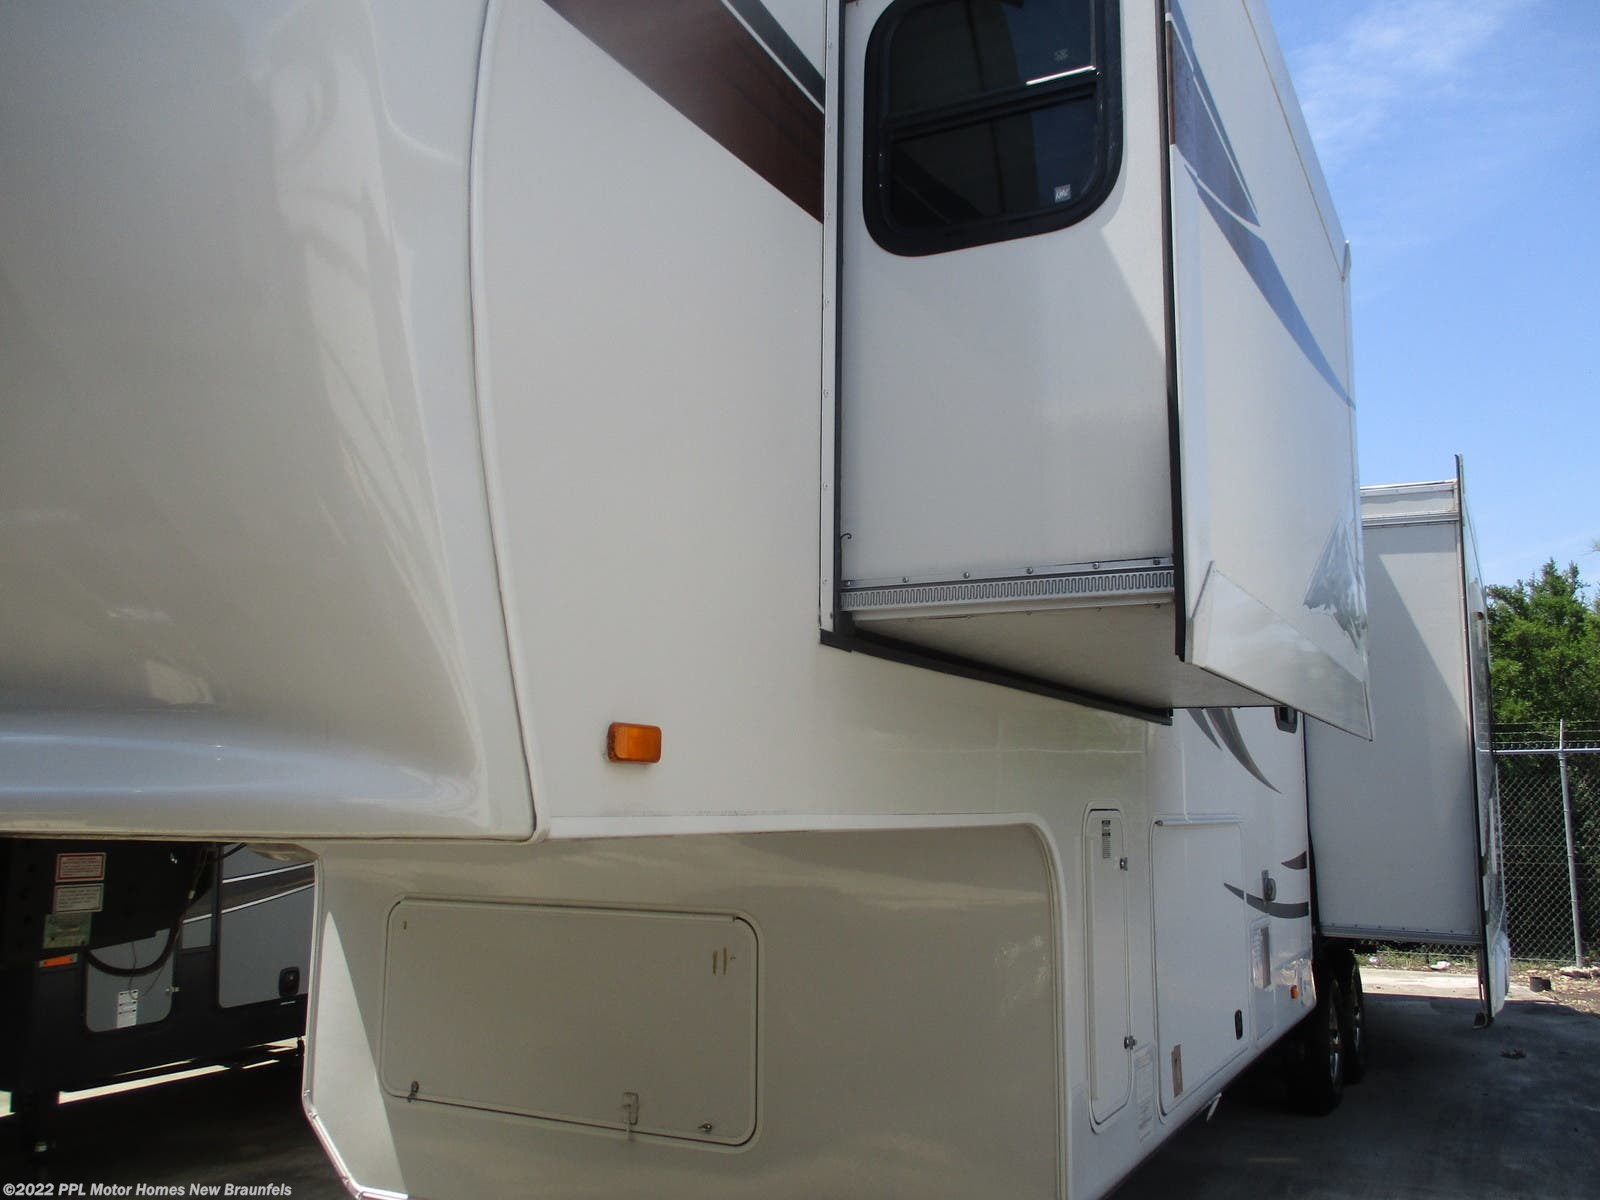 2012 Jayco RV Pinnacle 34 RLTS for Sale in New Braunfels, TX 78130 | F132NB